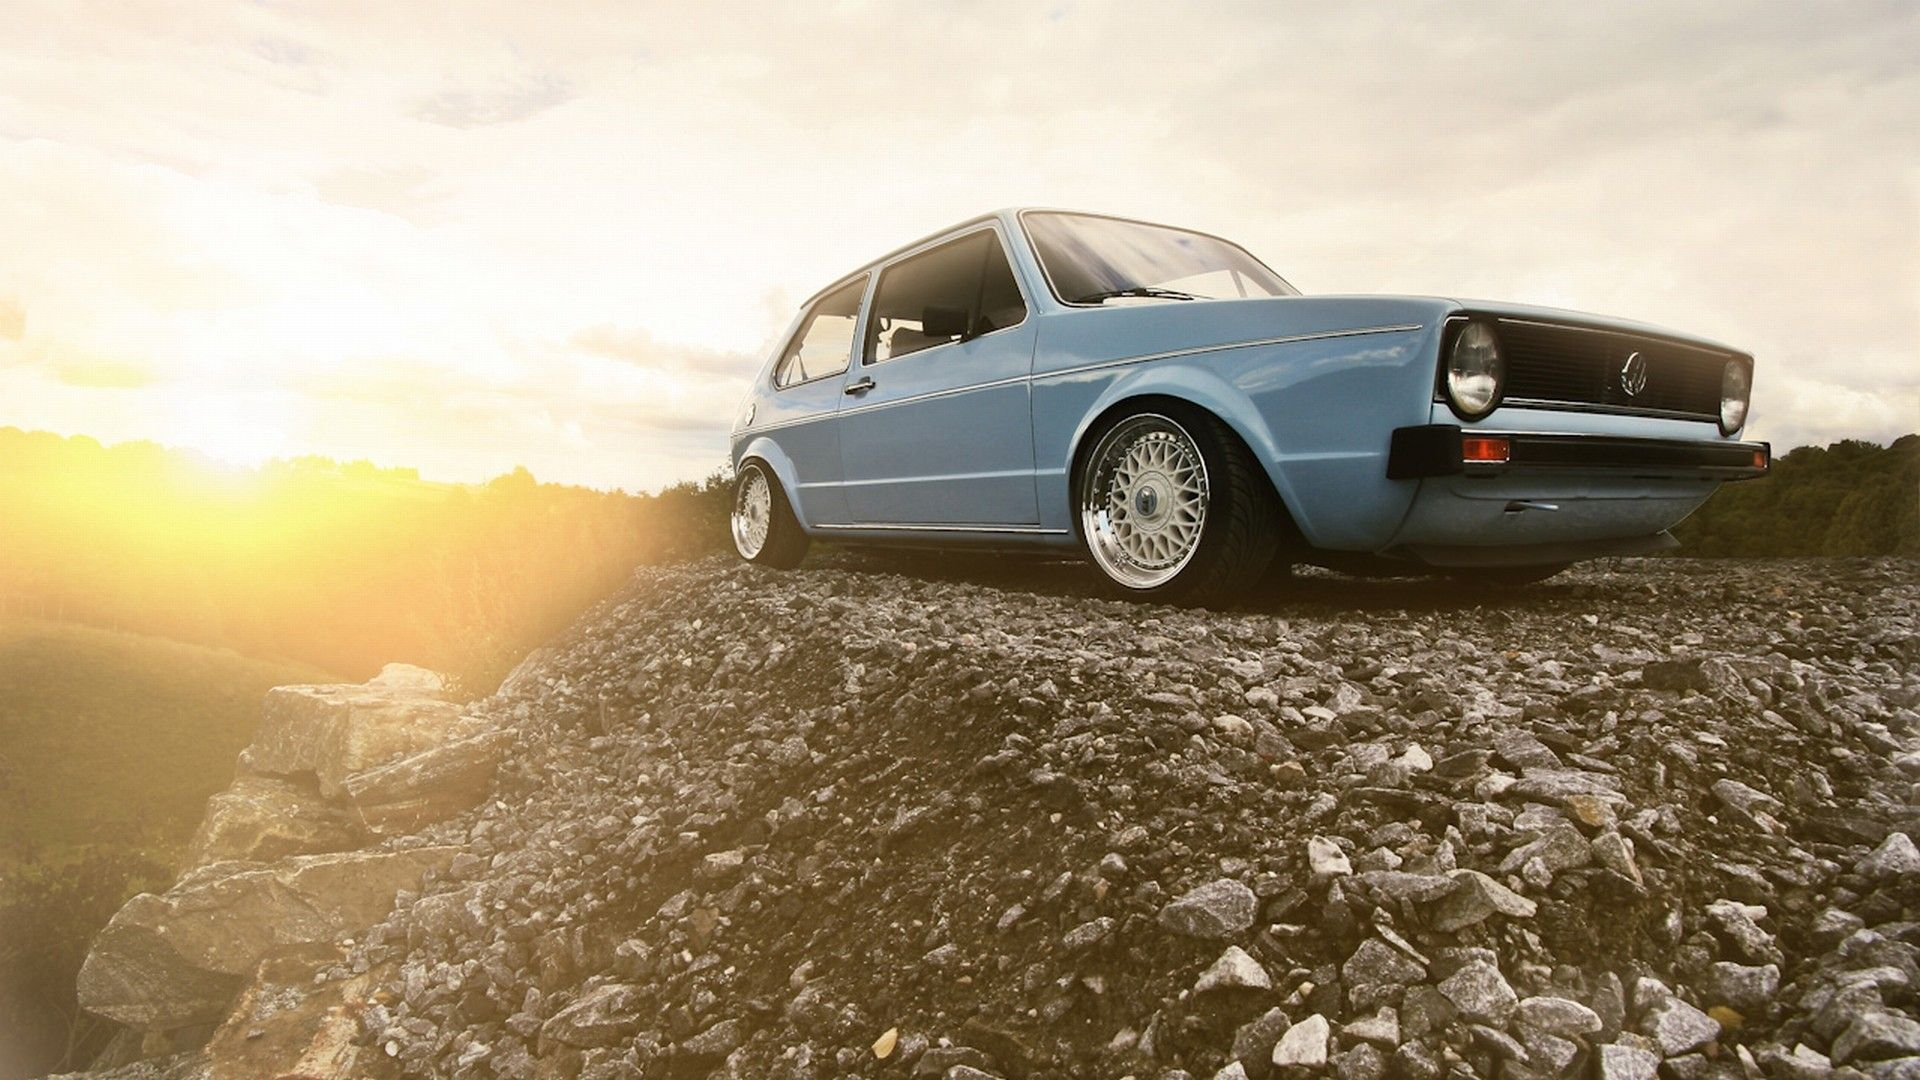 Low CleanMK II VR6 Crusin Volkswagen golf mk1 Volkswagen 1920x1080